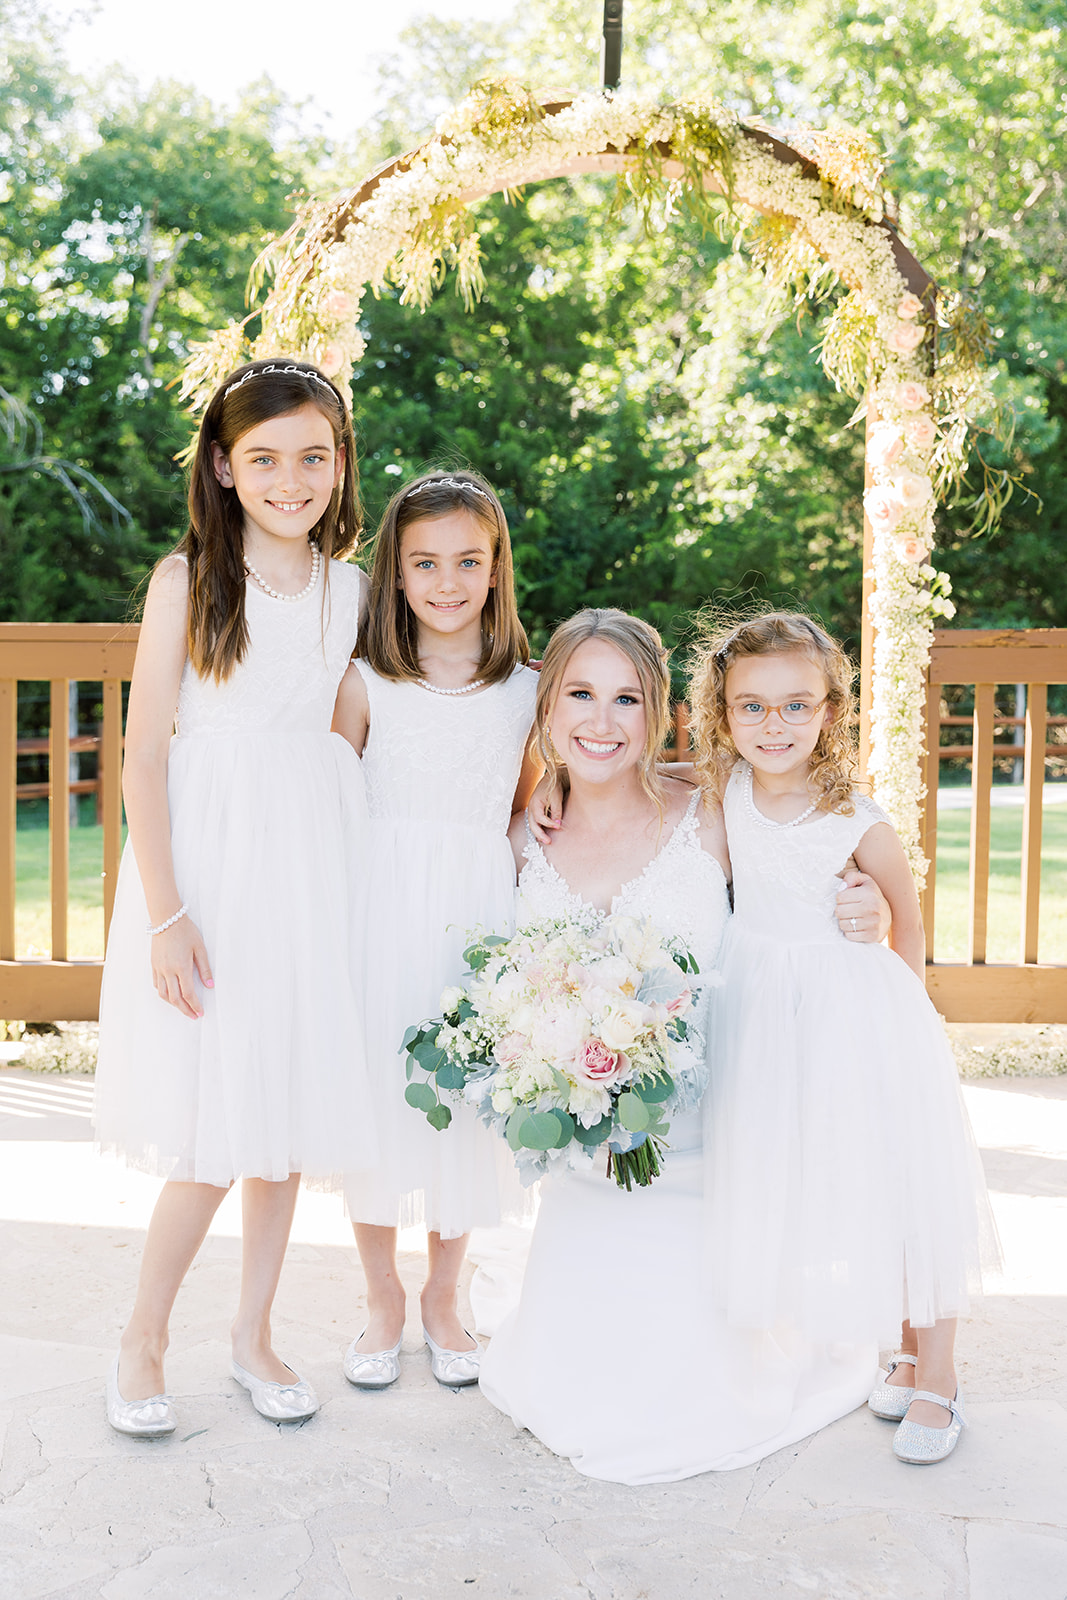 Flower girl dresses: | Romantic blue Texas wedding at Spring Venue by Alexa Kay Events